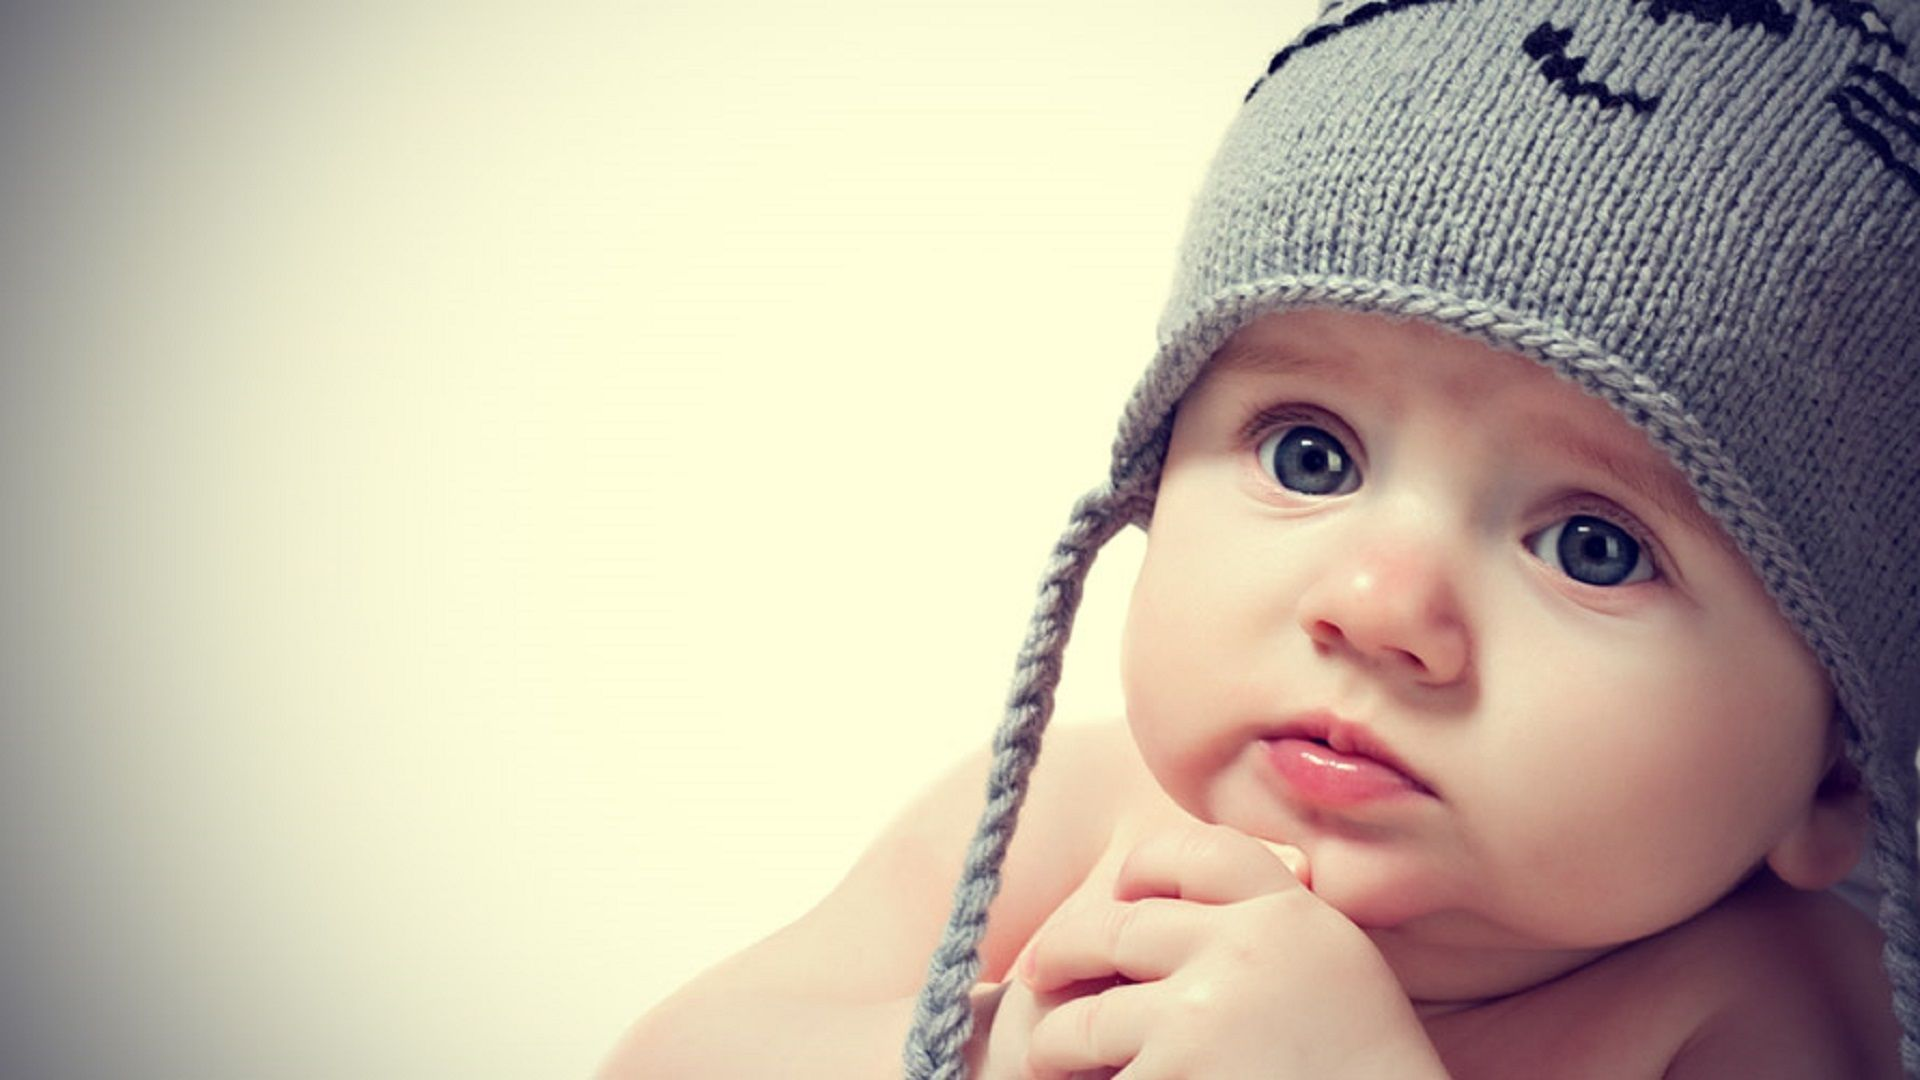 sweet baby hd wallpapers this wallpaper | hd wallpapers | cute